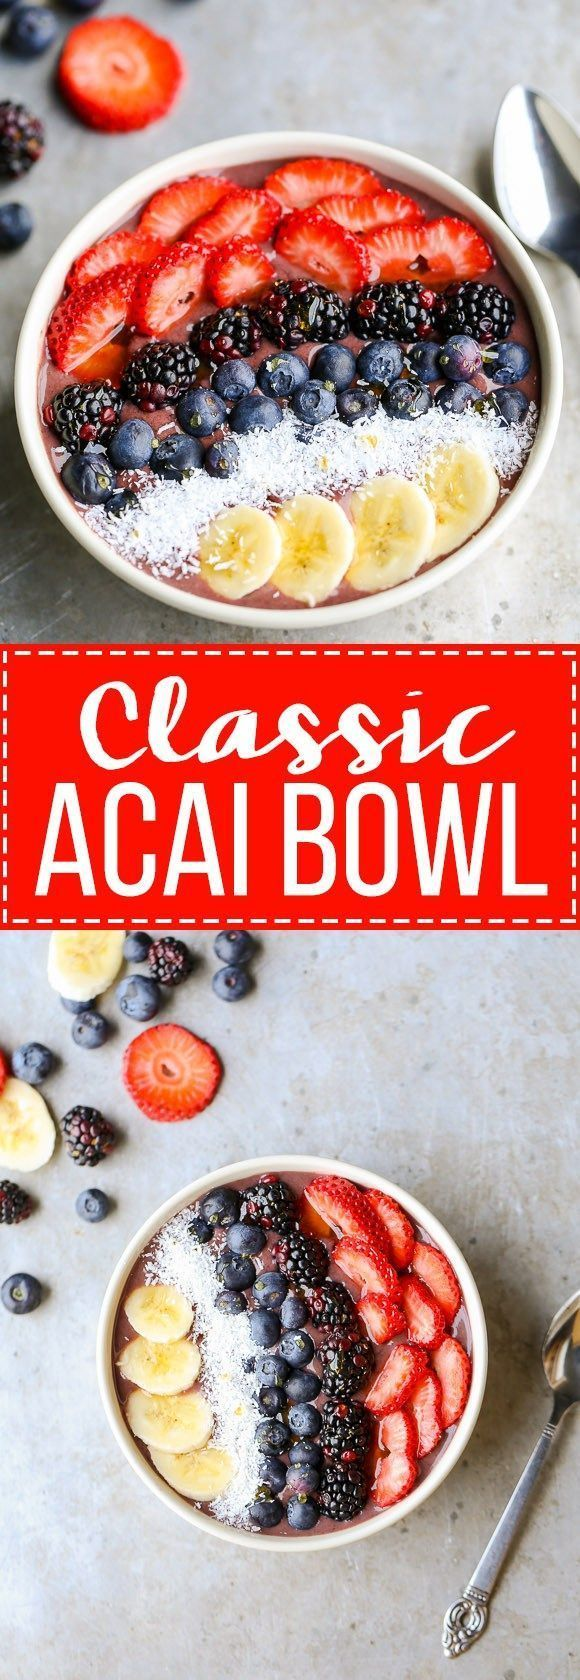 This recipe for a Classic Acai Bowl has only three ingredients and is so delicious! When making a homemade acai bowl, you can customize with your favorite toppings.